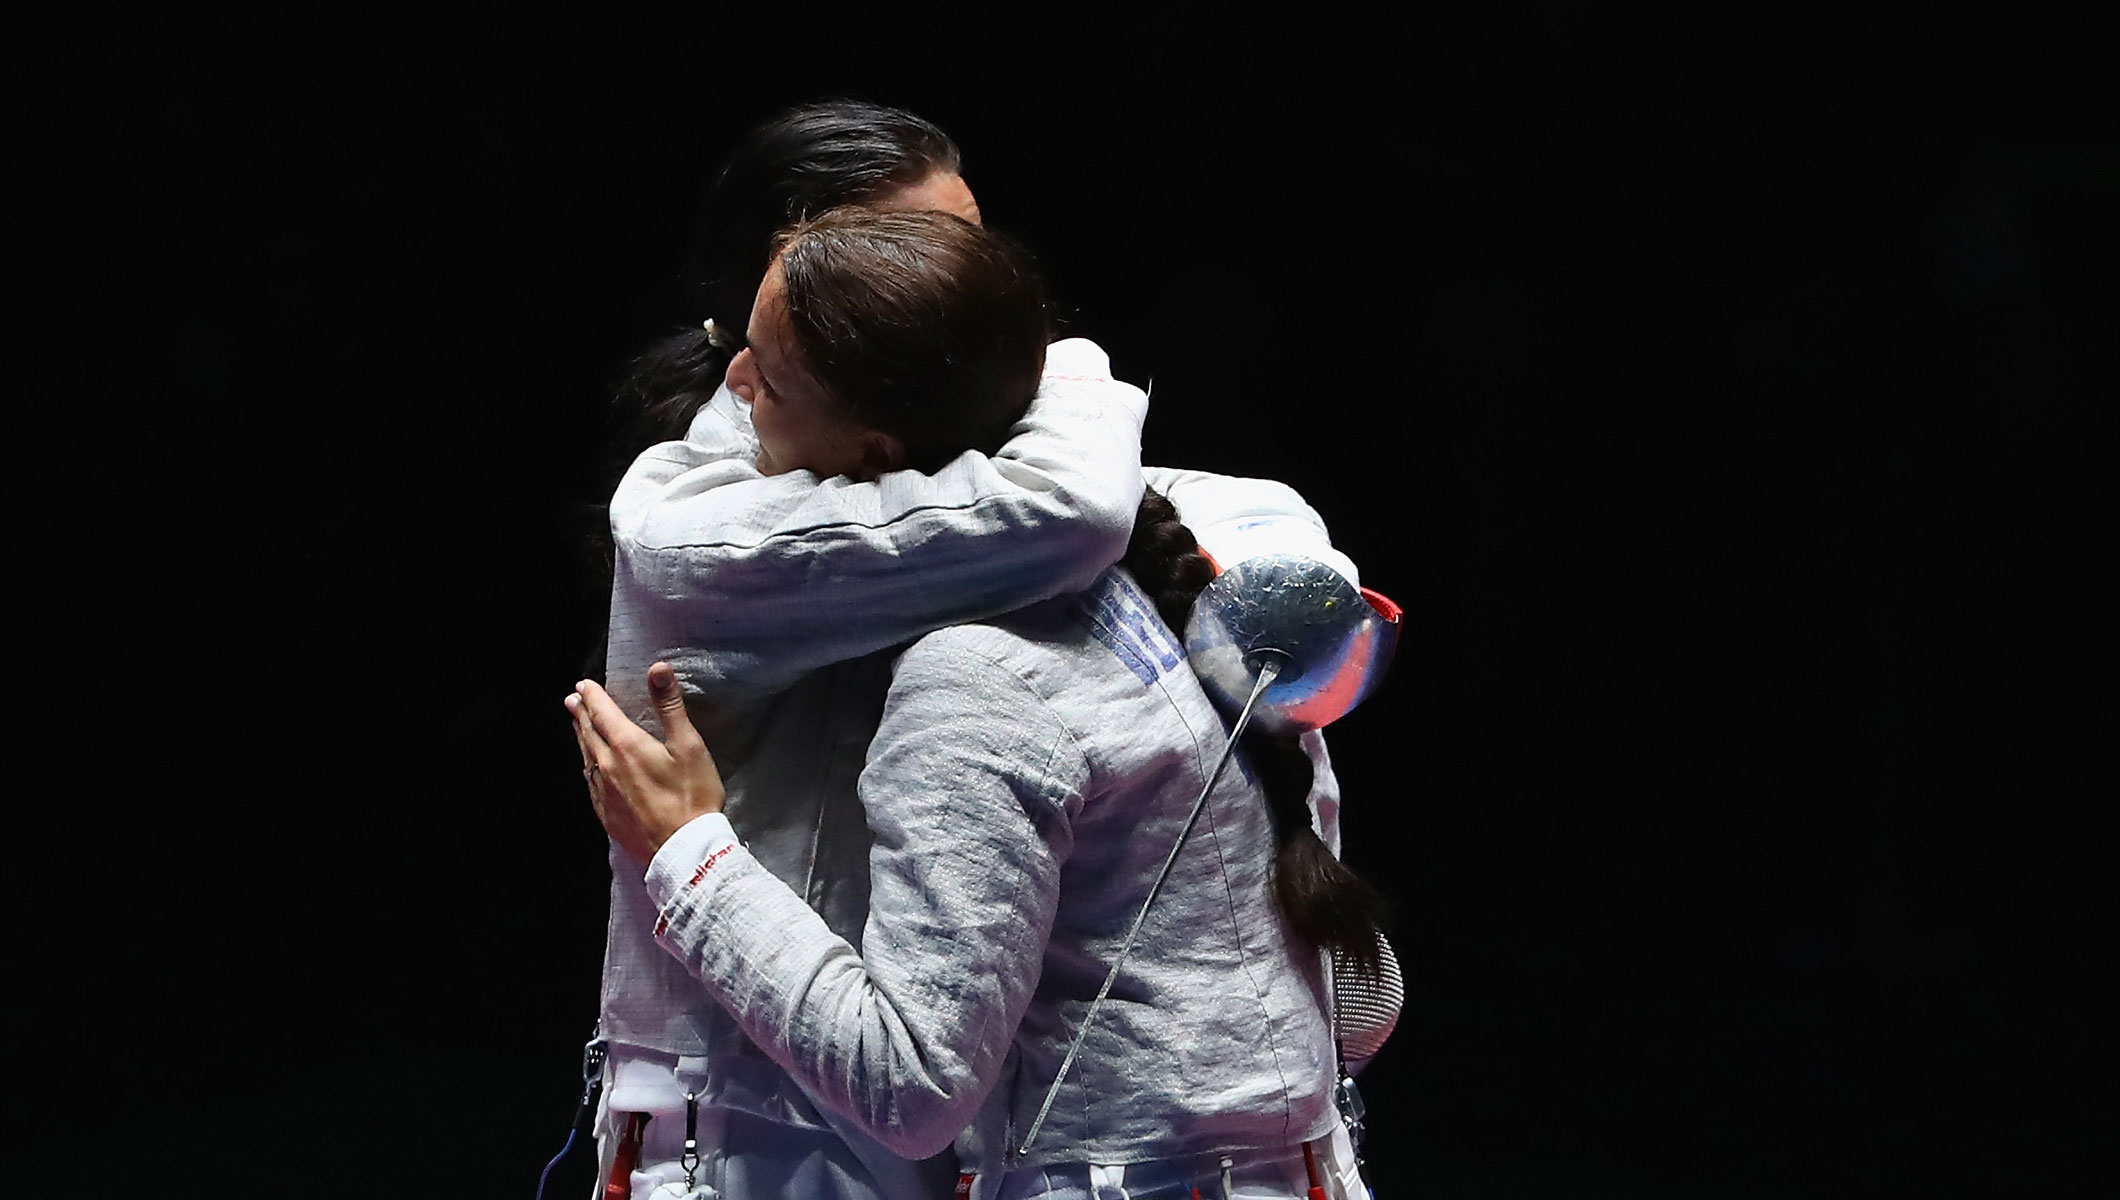 Sofya Velikaya of Russia (L) and Yana Egorian of Russia embrace following the Women's Individual Sabre Gold Medal Bout on Day 3 of the Rio 2016 Olympic Games at Carioca Arena 3 on August 8, 2016 in Rio de Janeiro, Brazil.